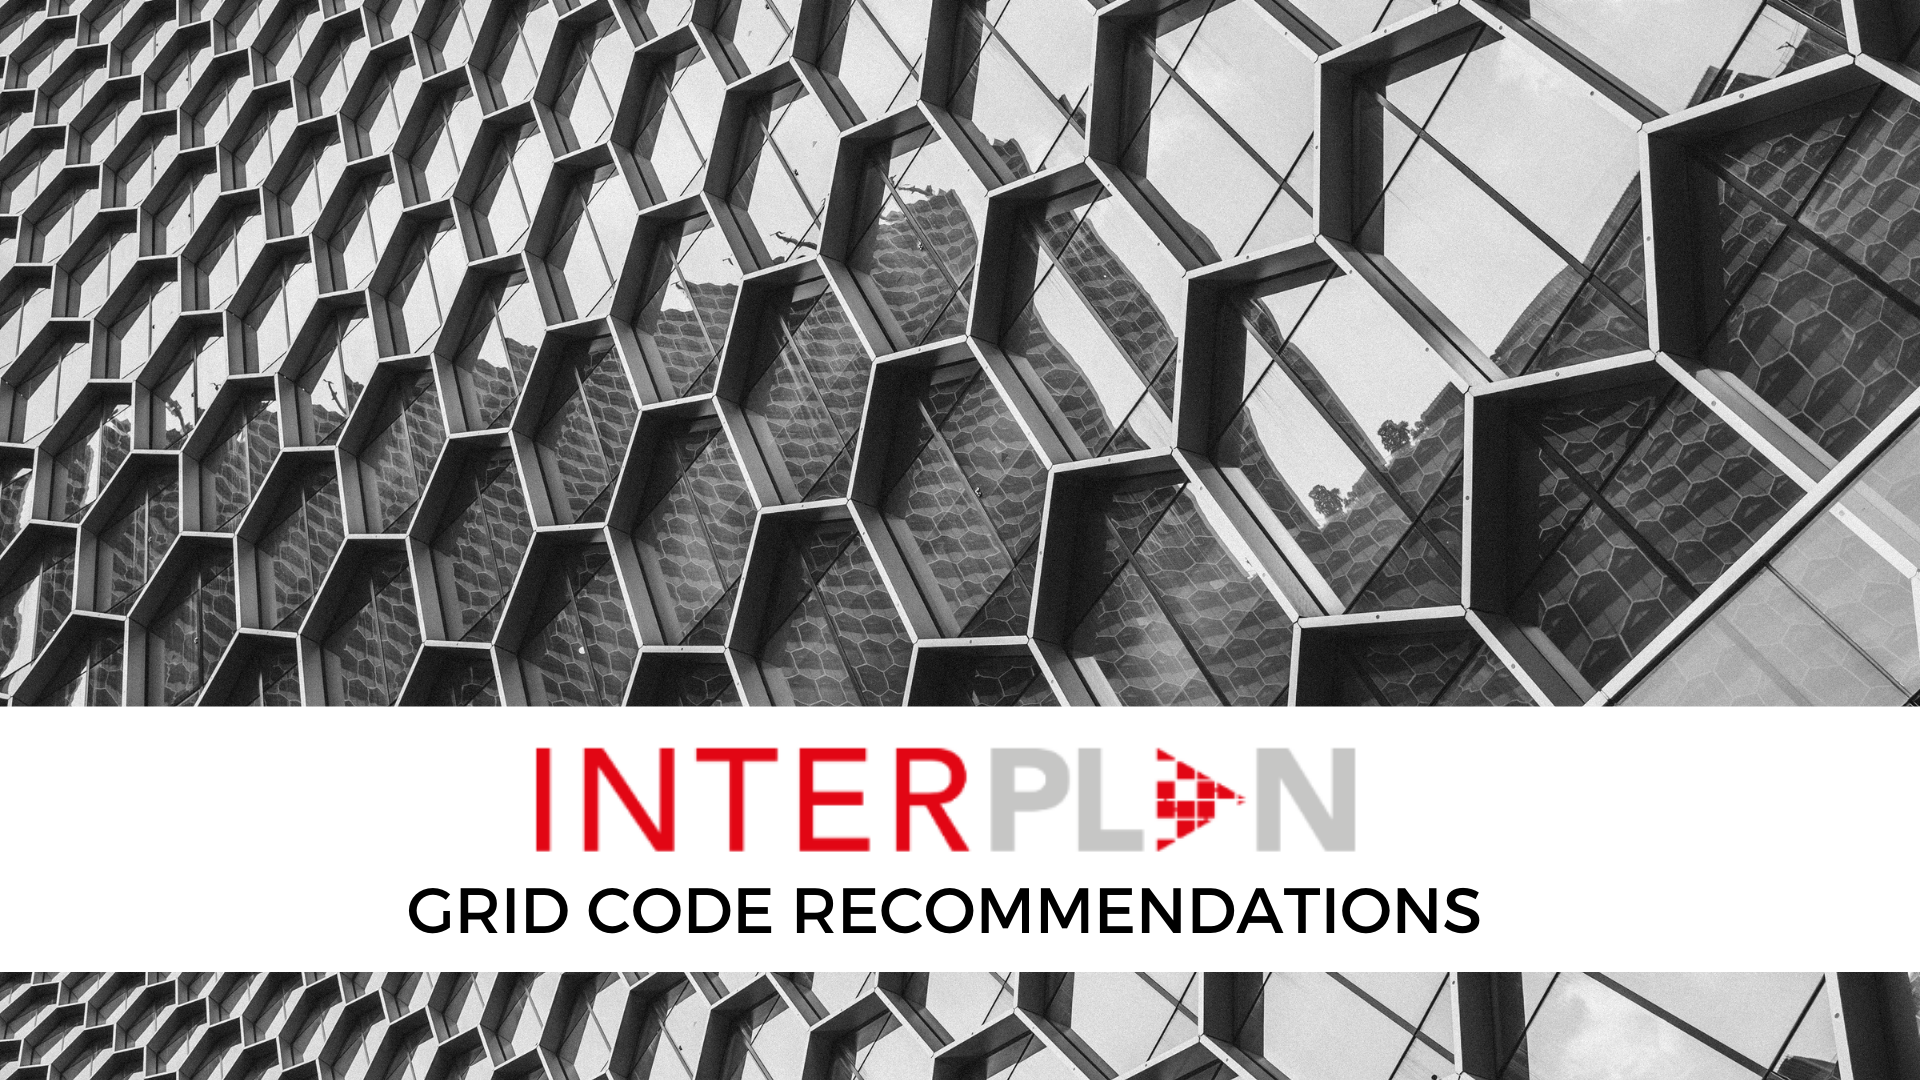 INTERPLAN report on Grid Code Recommendations